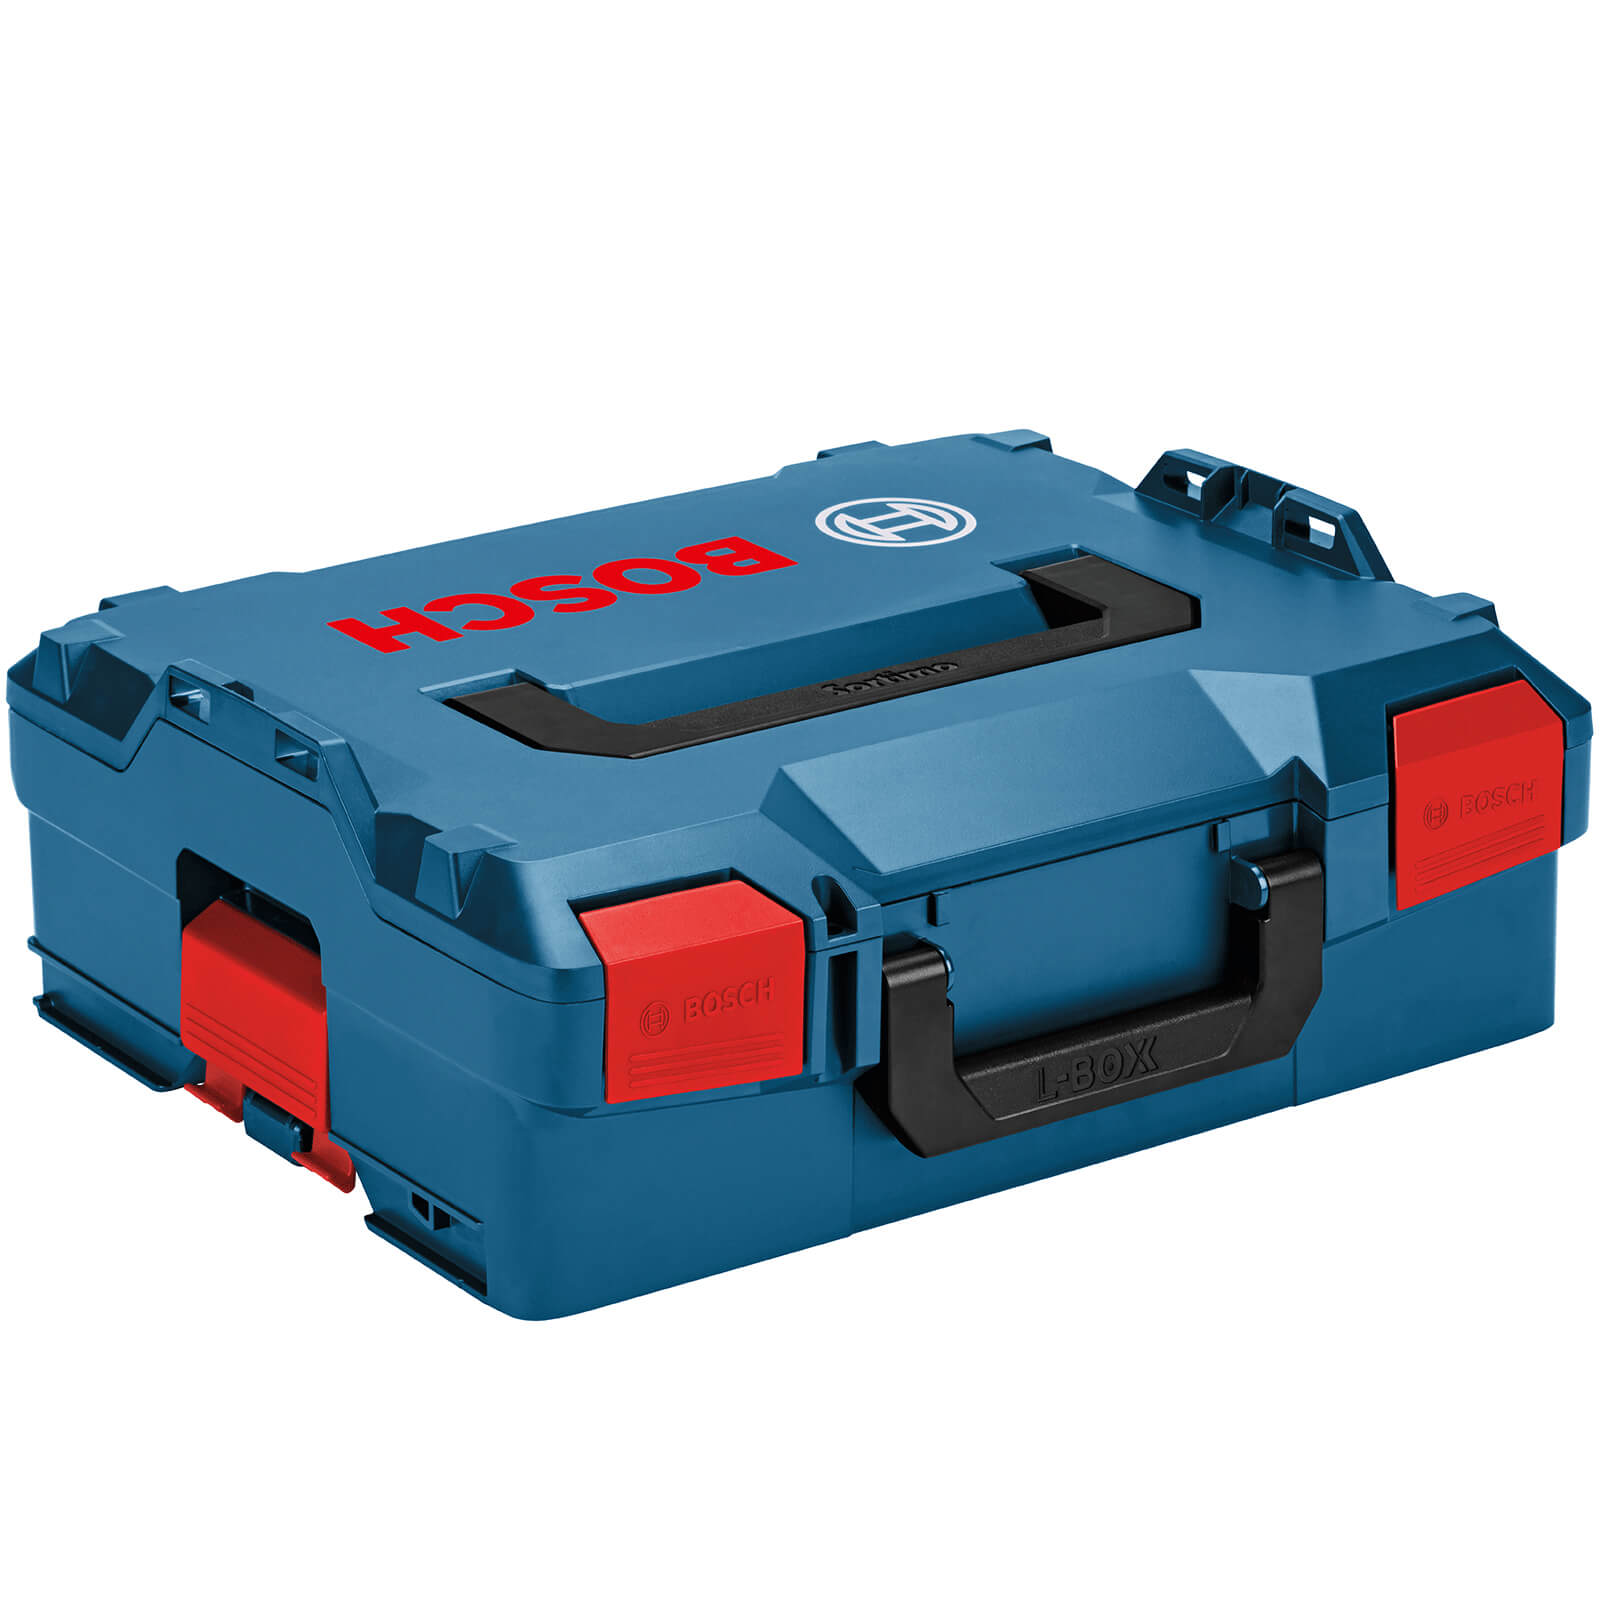 Image of Bosch L-BOXX 2 Mobility Tool Case 136